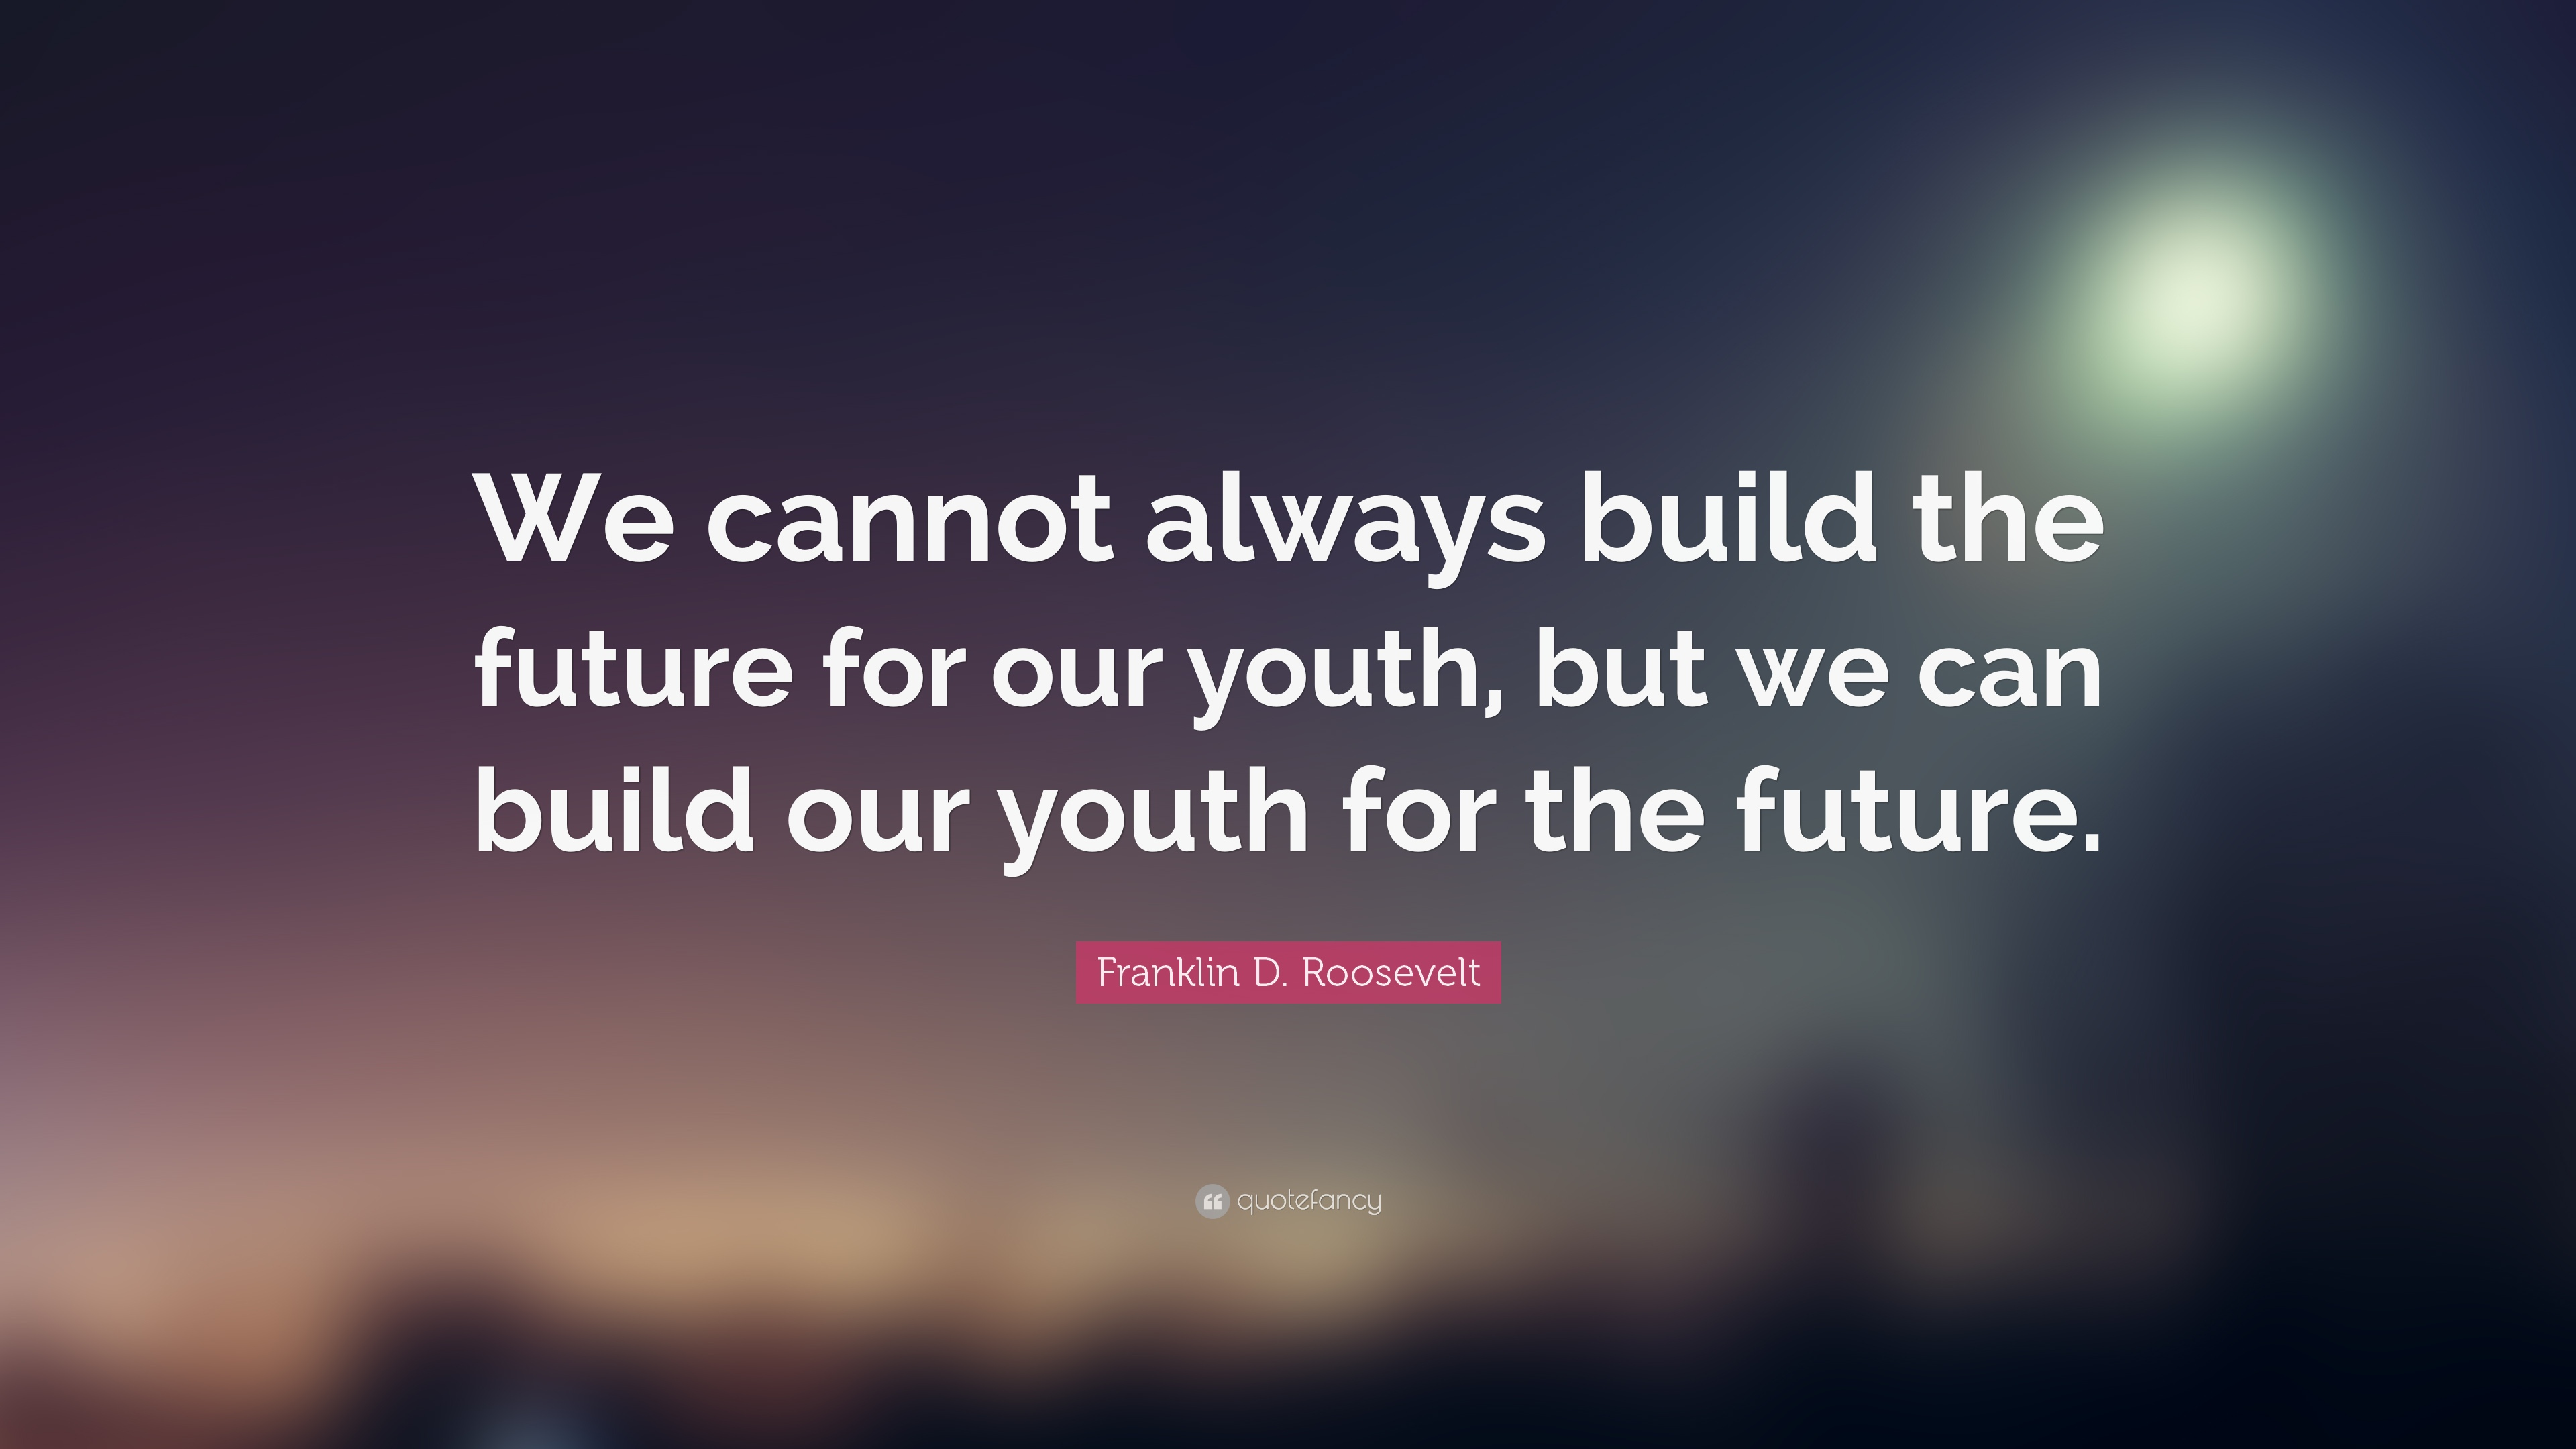 We cannot build a future for our youth but we can build our youth for the future discuss